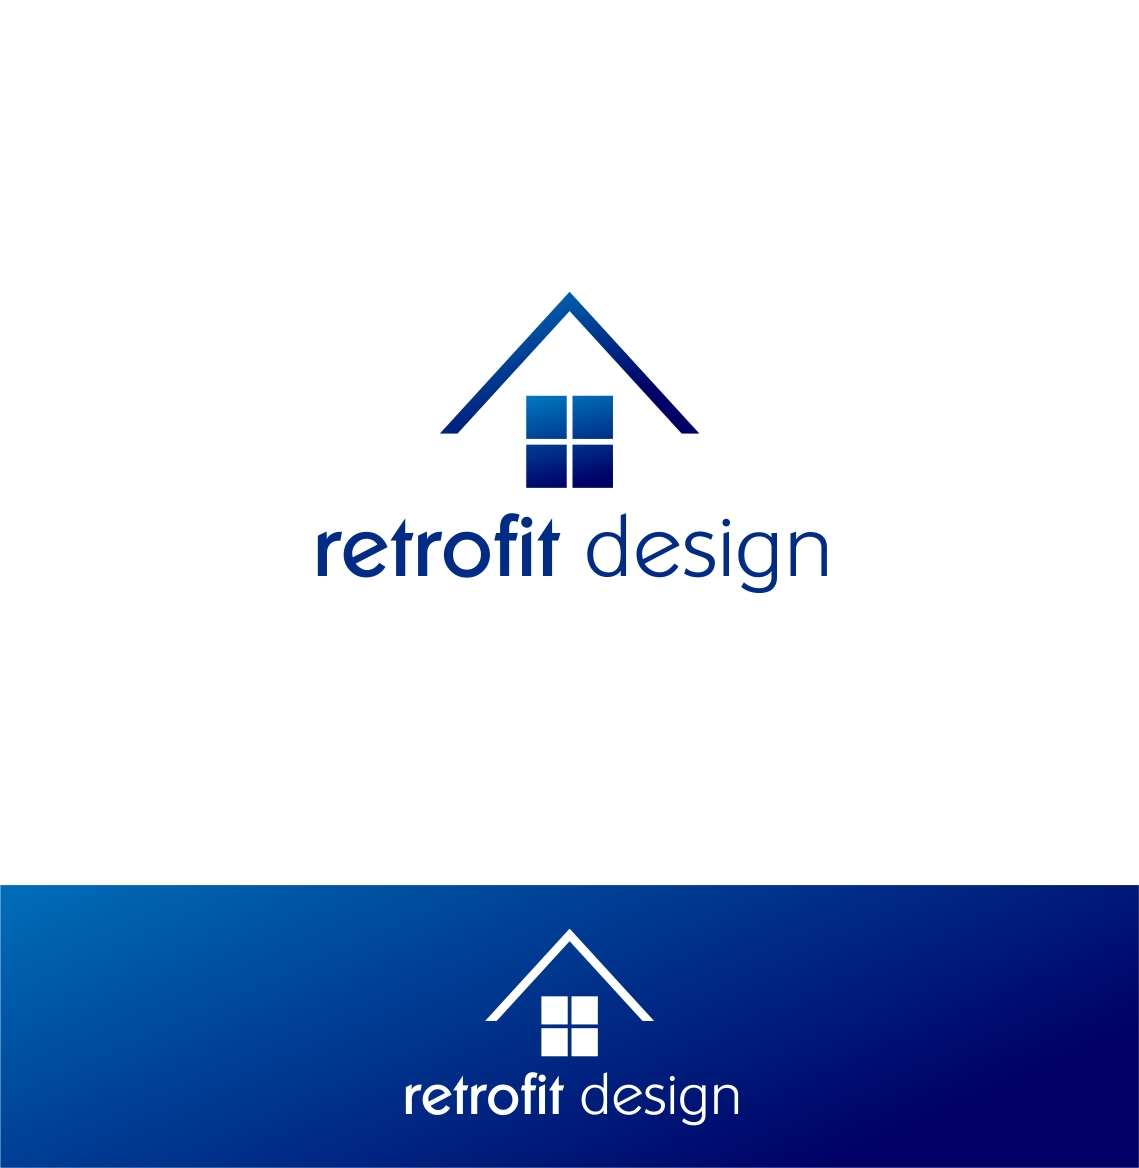 Logo Design by haidu - Entry No. 173 in the Logo Design Contest Inspiring Logo Design for retrofit design.